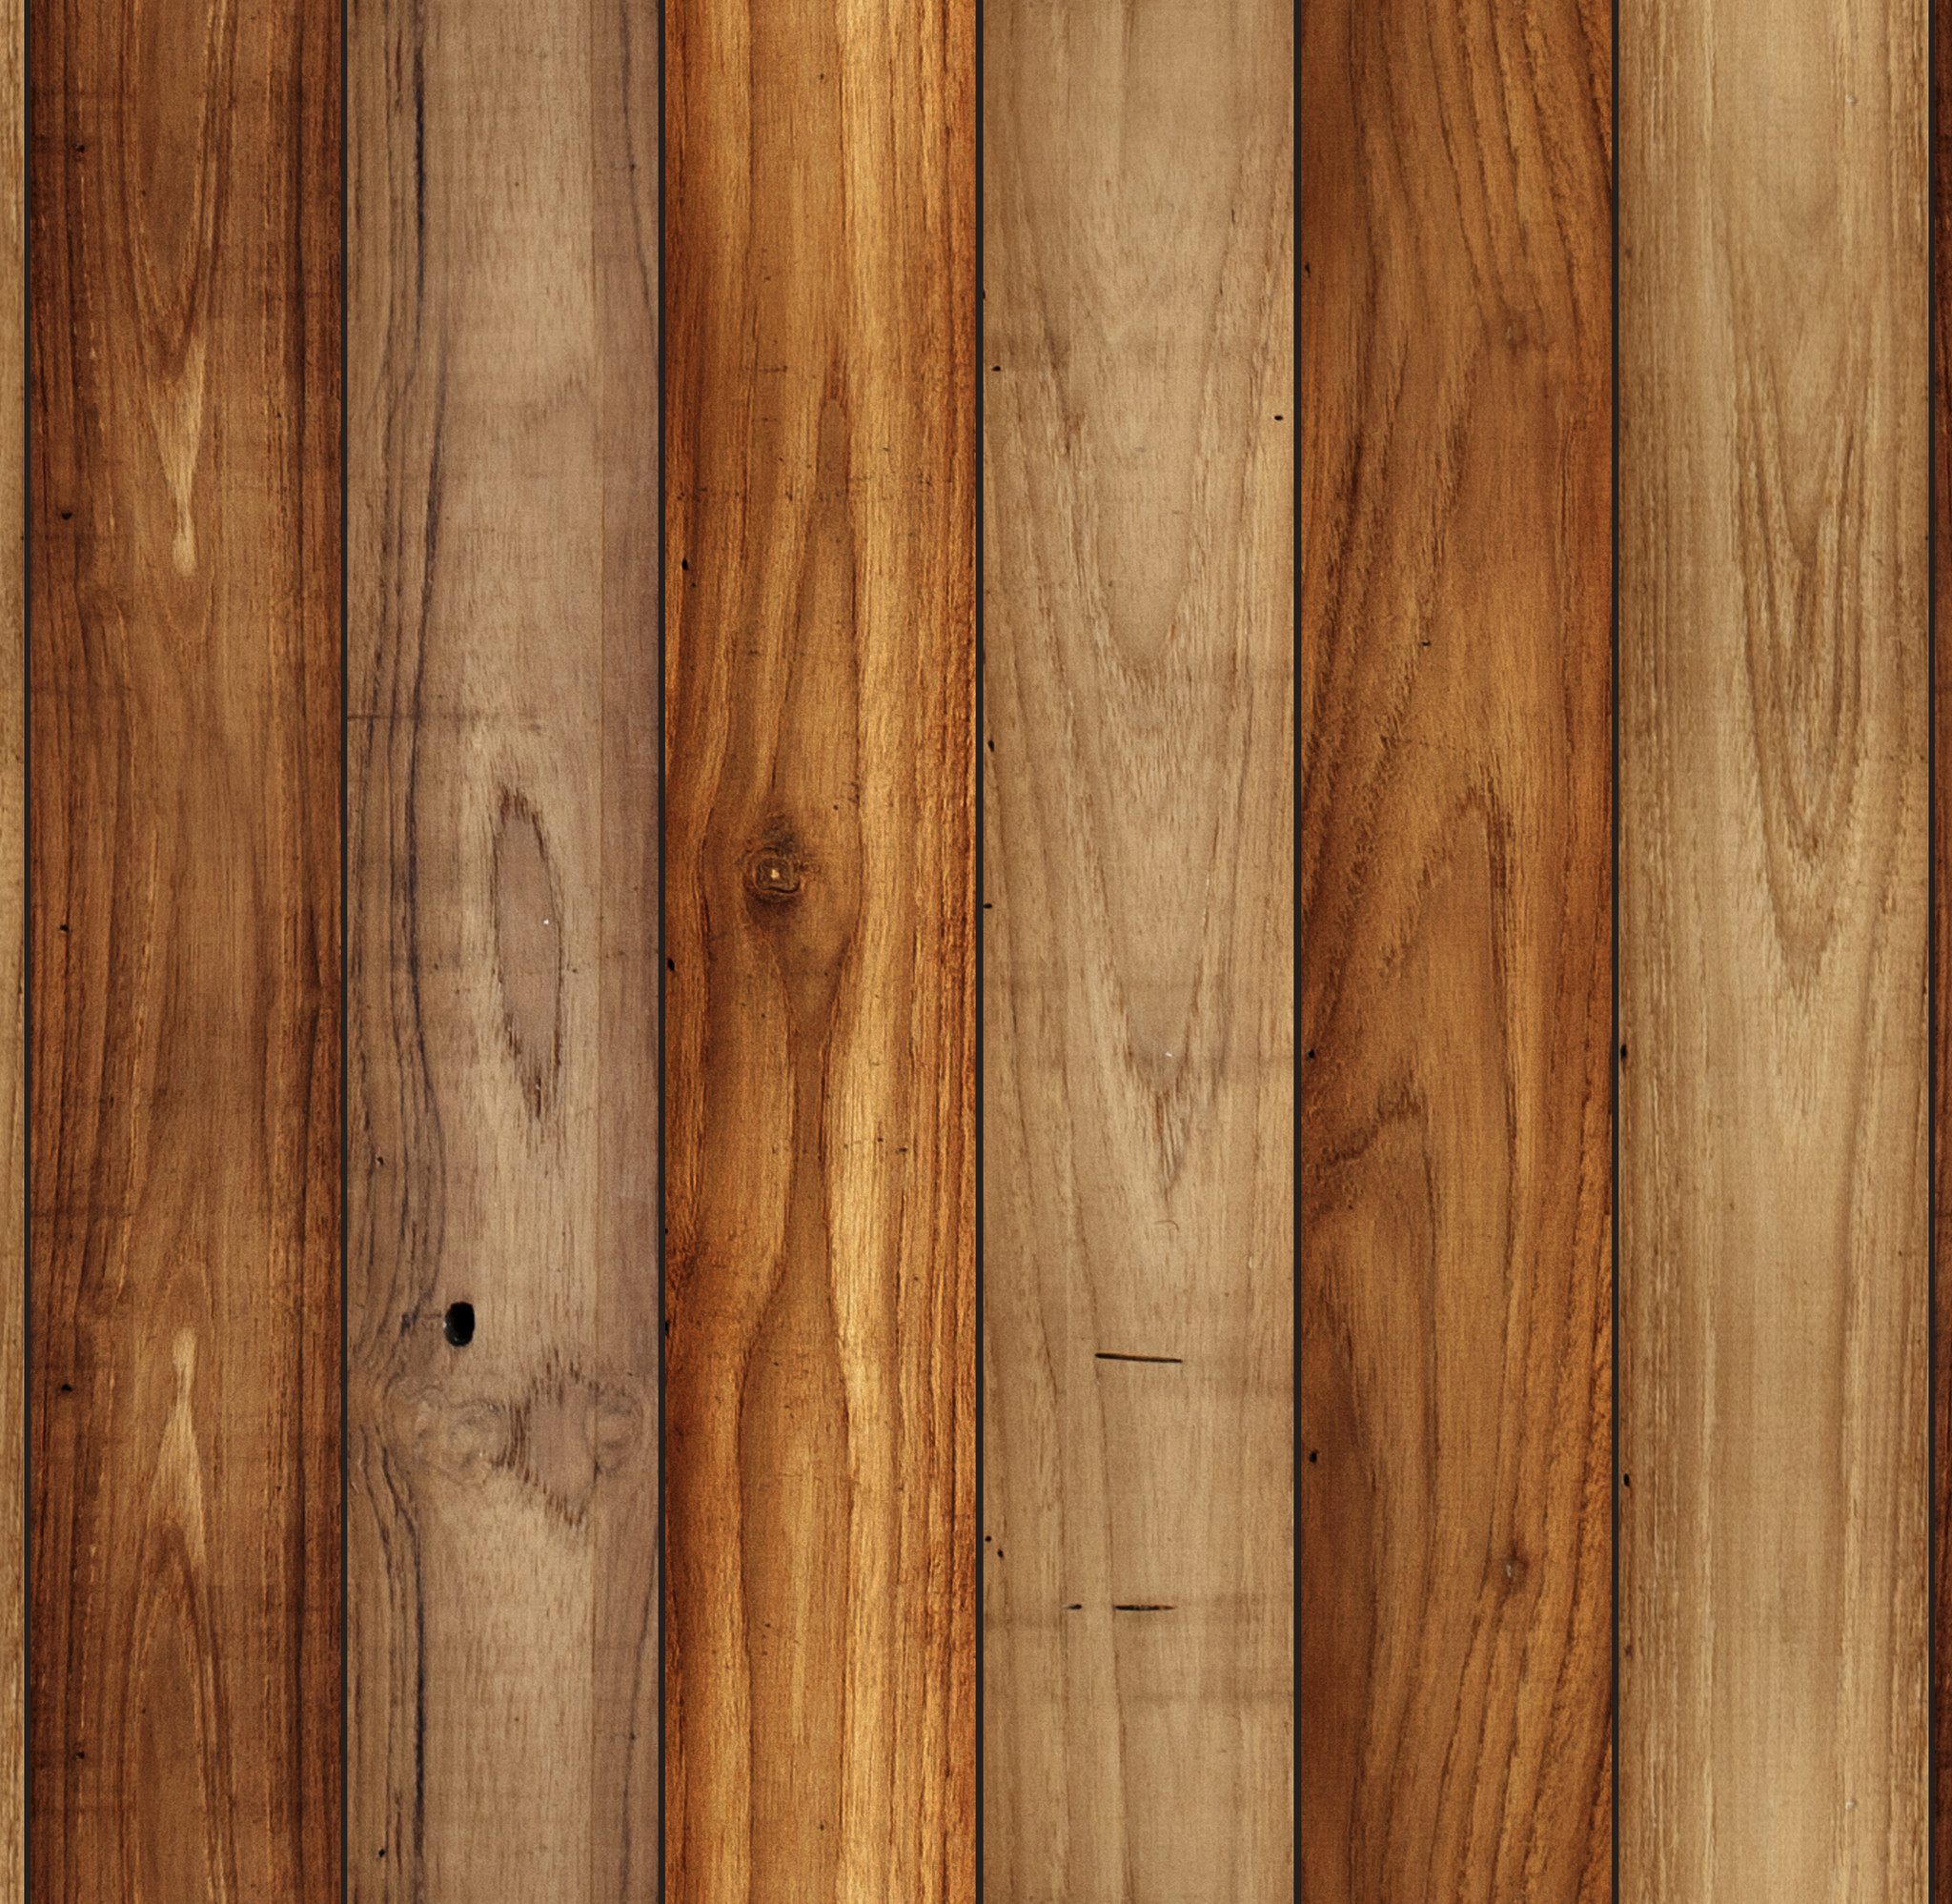 Removable Wallpaper – Wood Panel